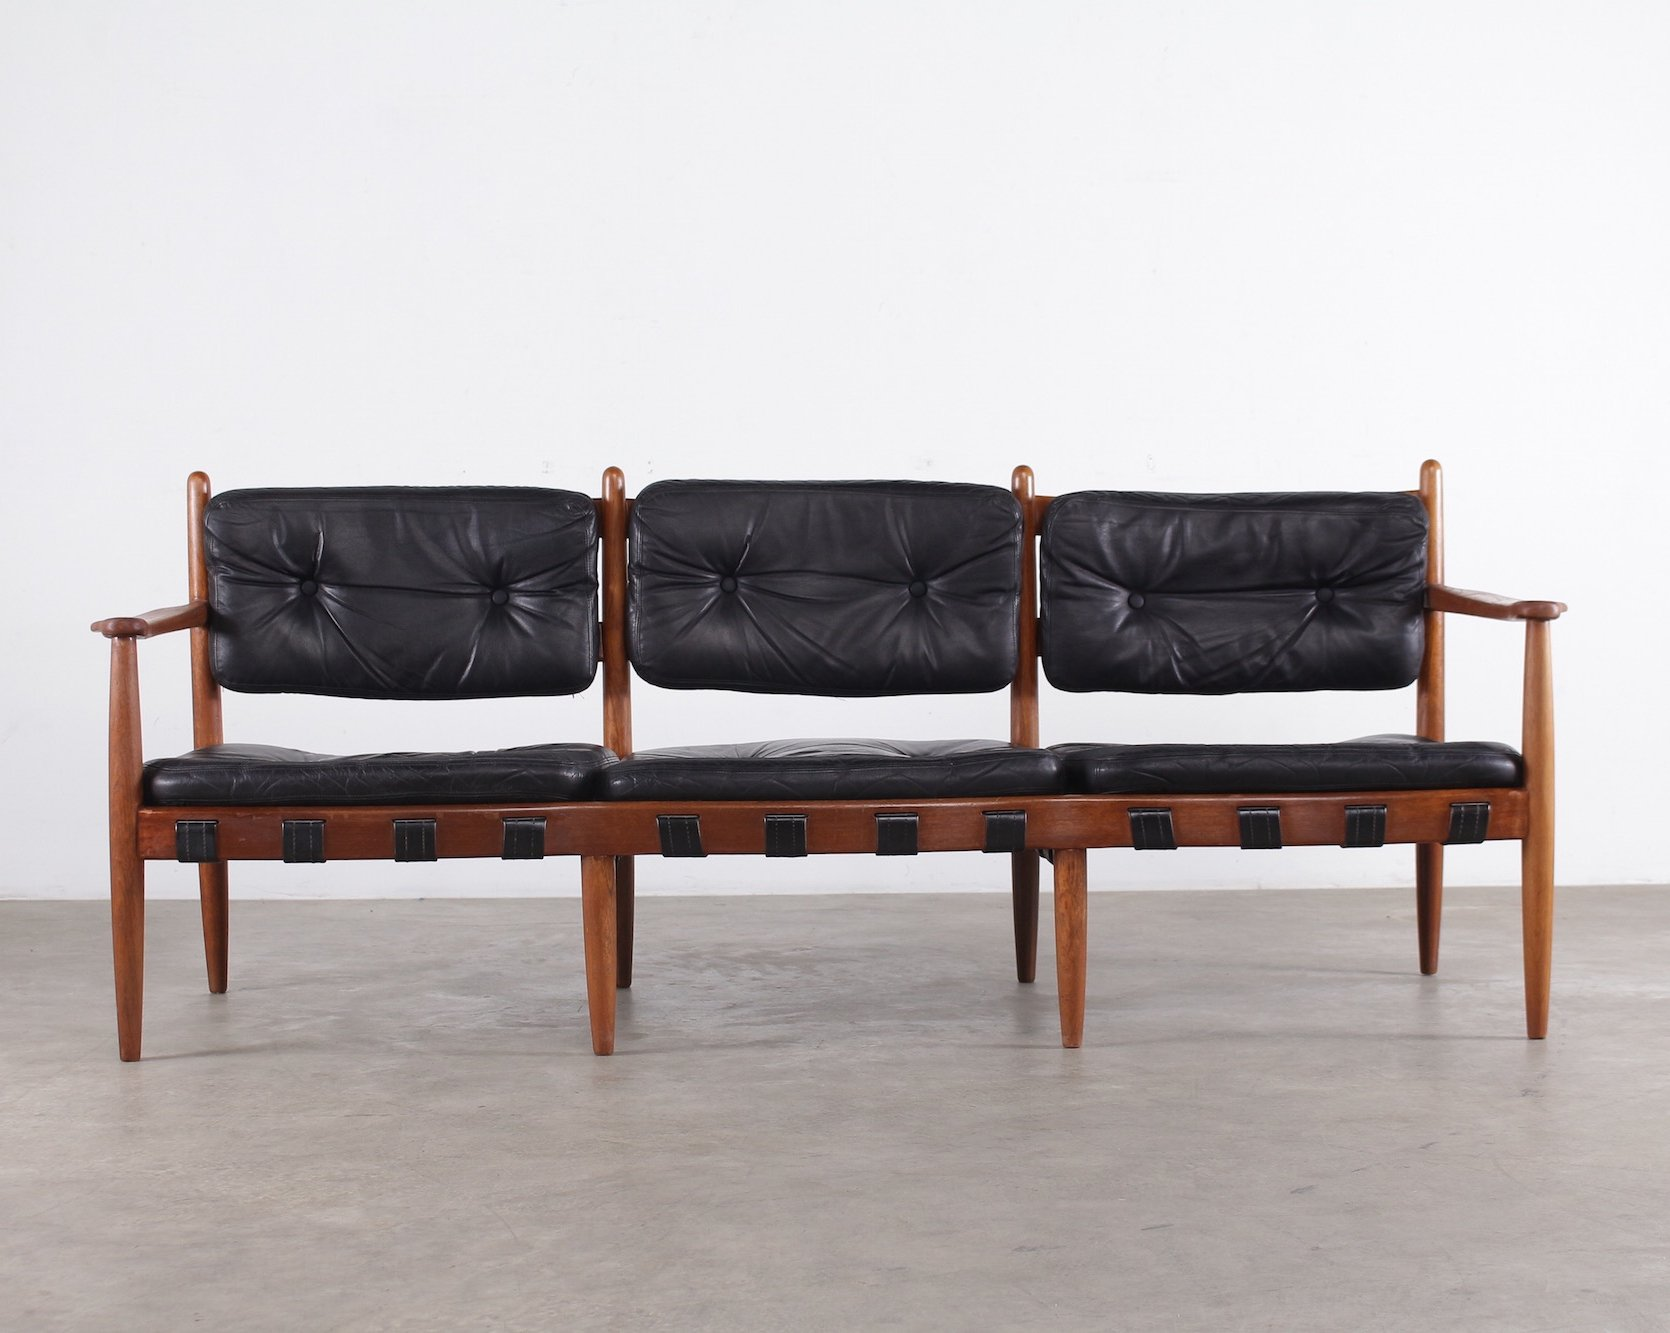 3 seater black leather sofa handy living milan in blue three 39cadett 39 by eric merthen